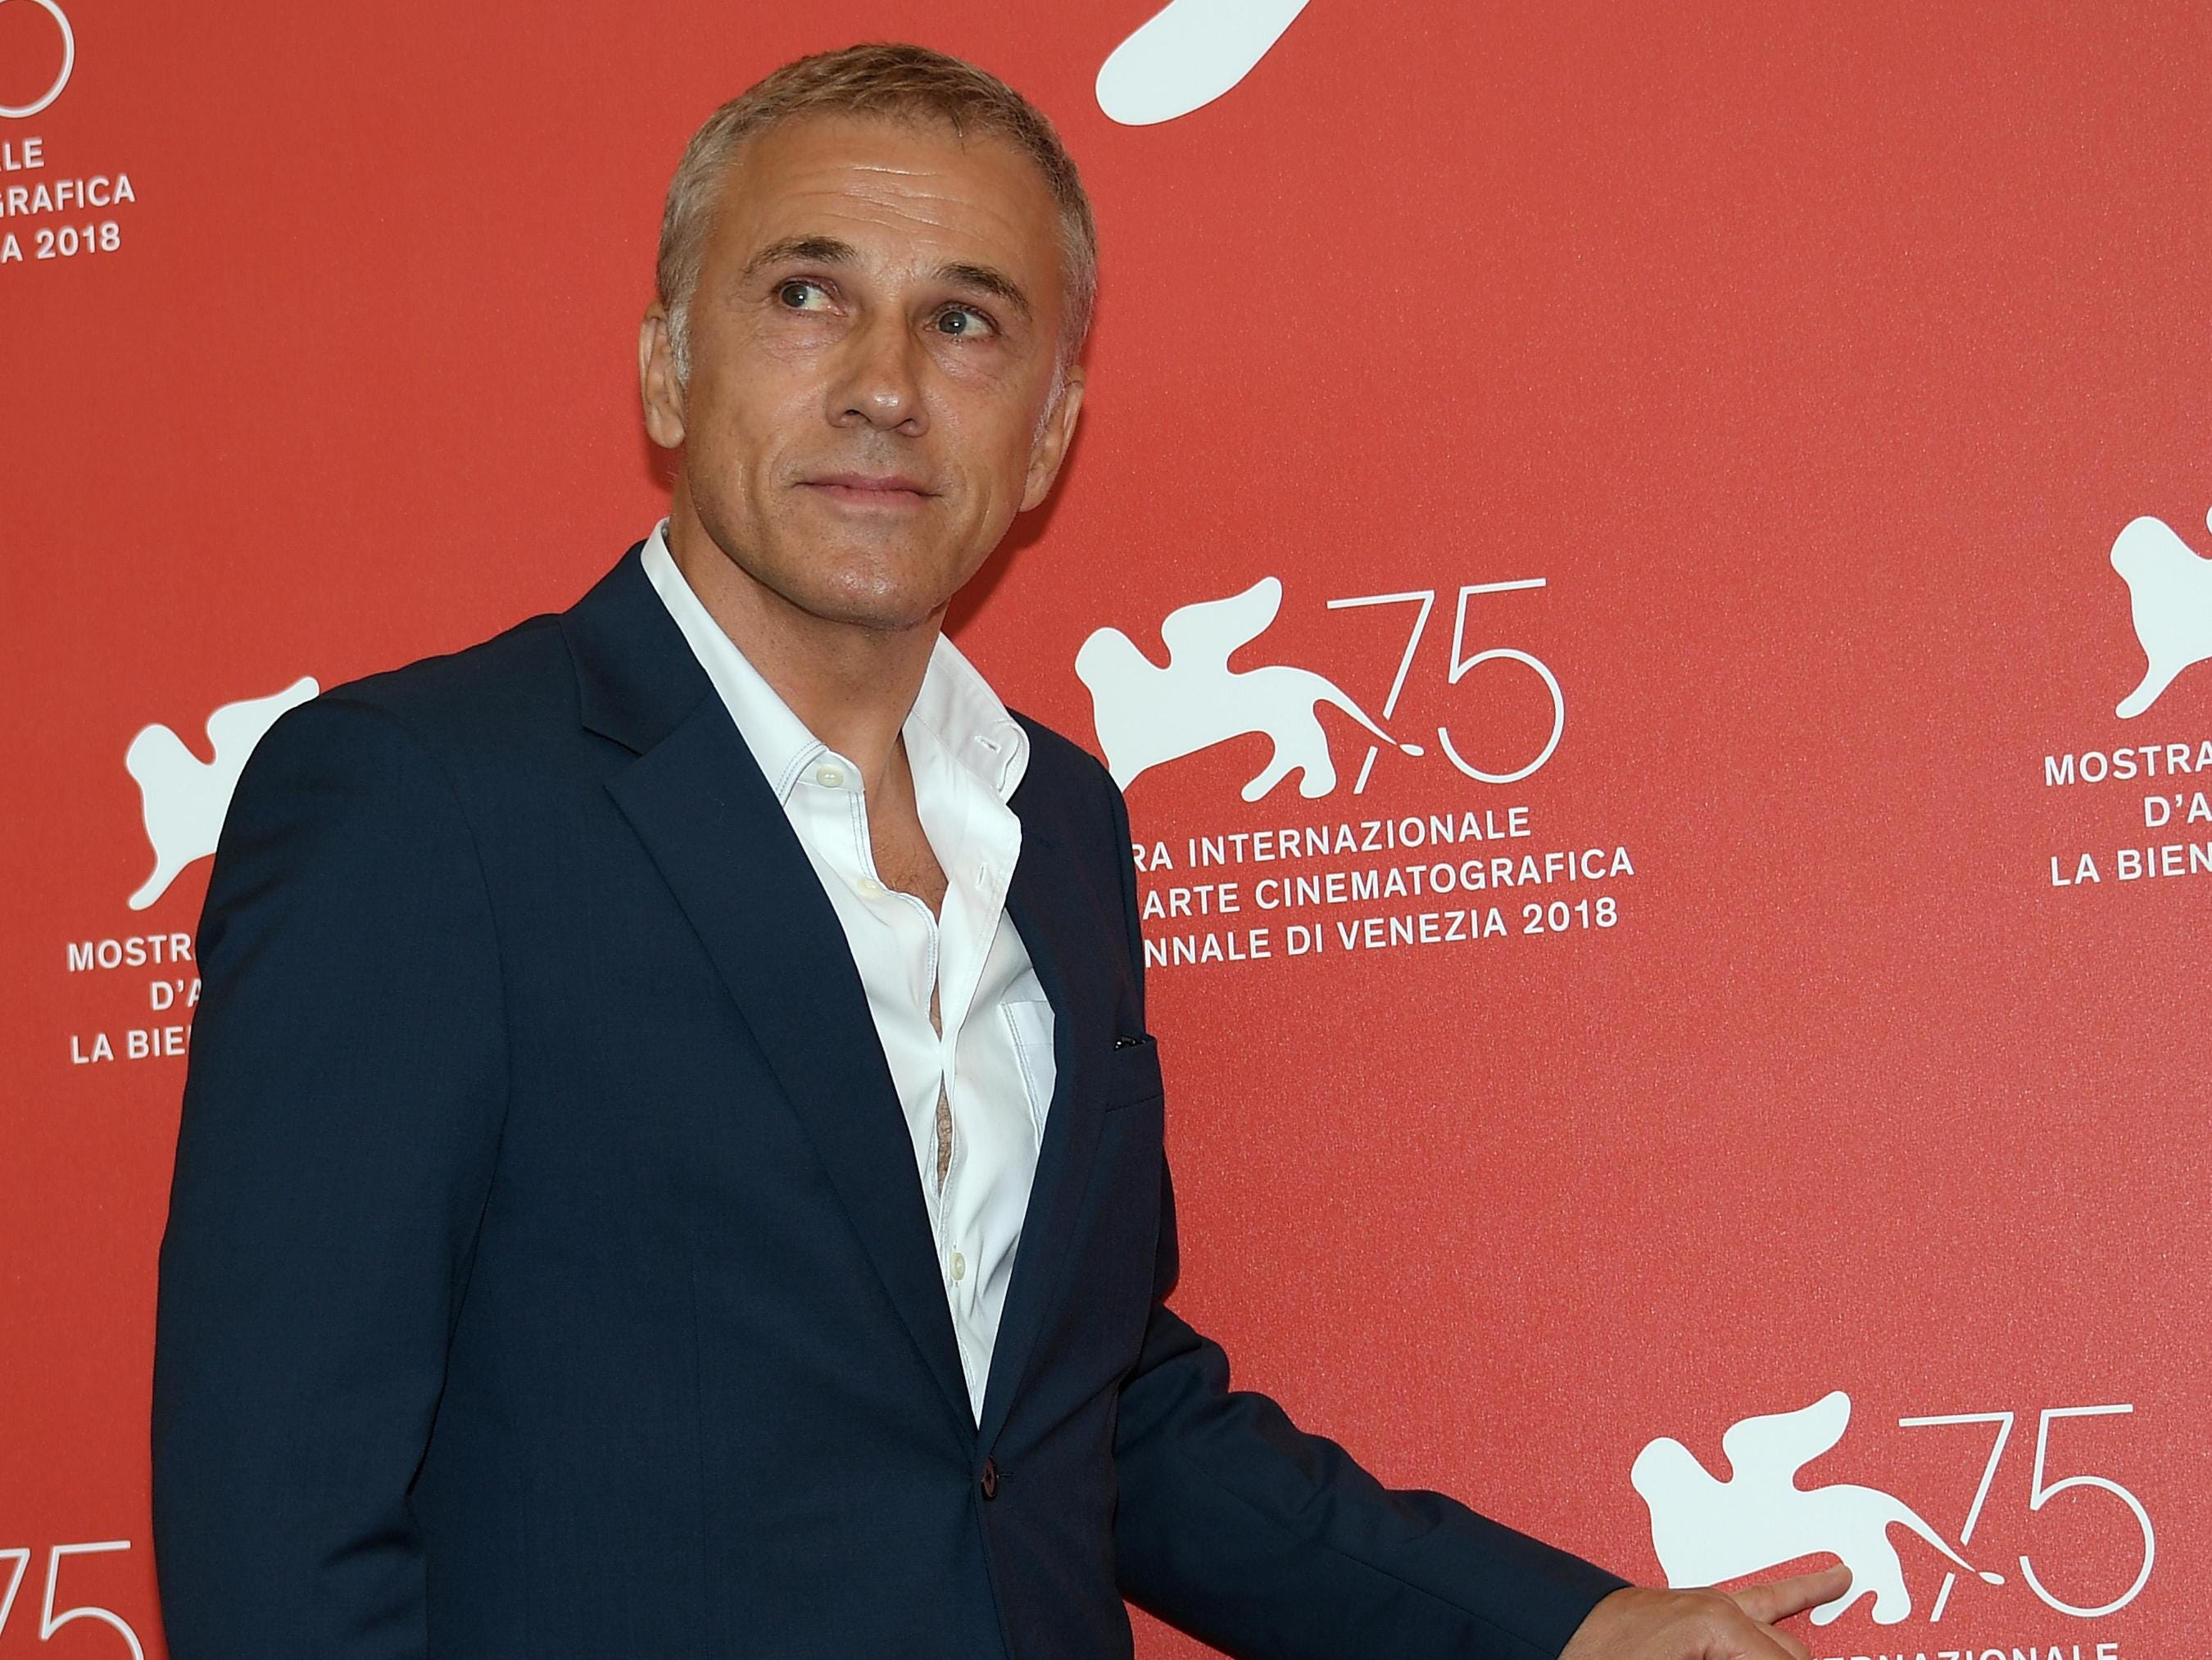 epa06981041 Member of the 'Venezia 75' jury Austrian actor Christoph Waltz poses during a photocall at the 75th annual Venice International Film Festival, in Venice, Italy, 29 August 2018. The festival runs from 29 August to 08 September 2018.  EPA-EFE/CLAUDIO ONORATI